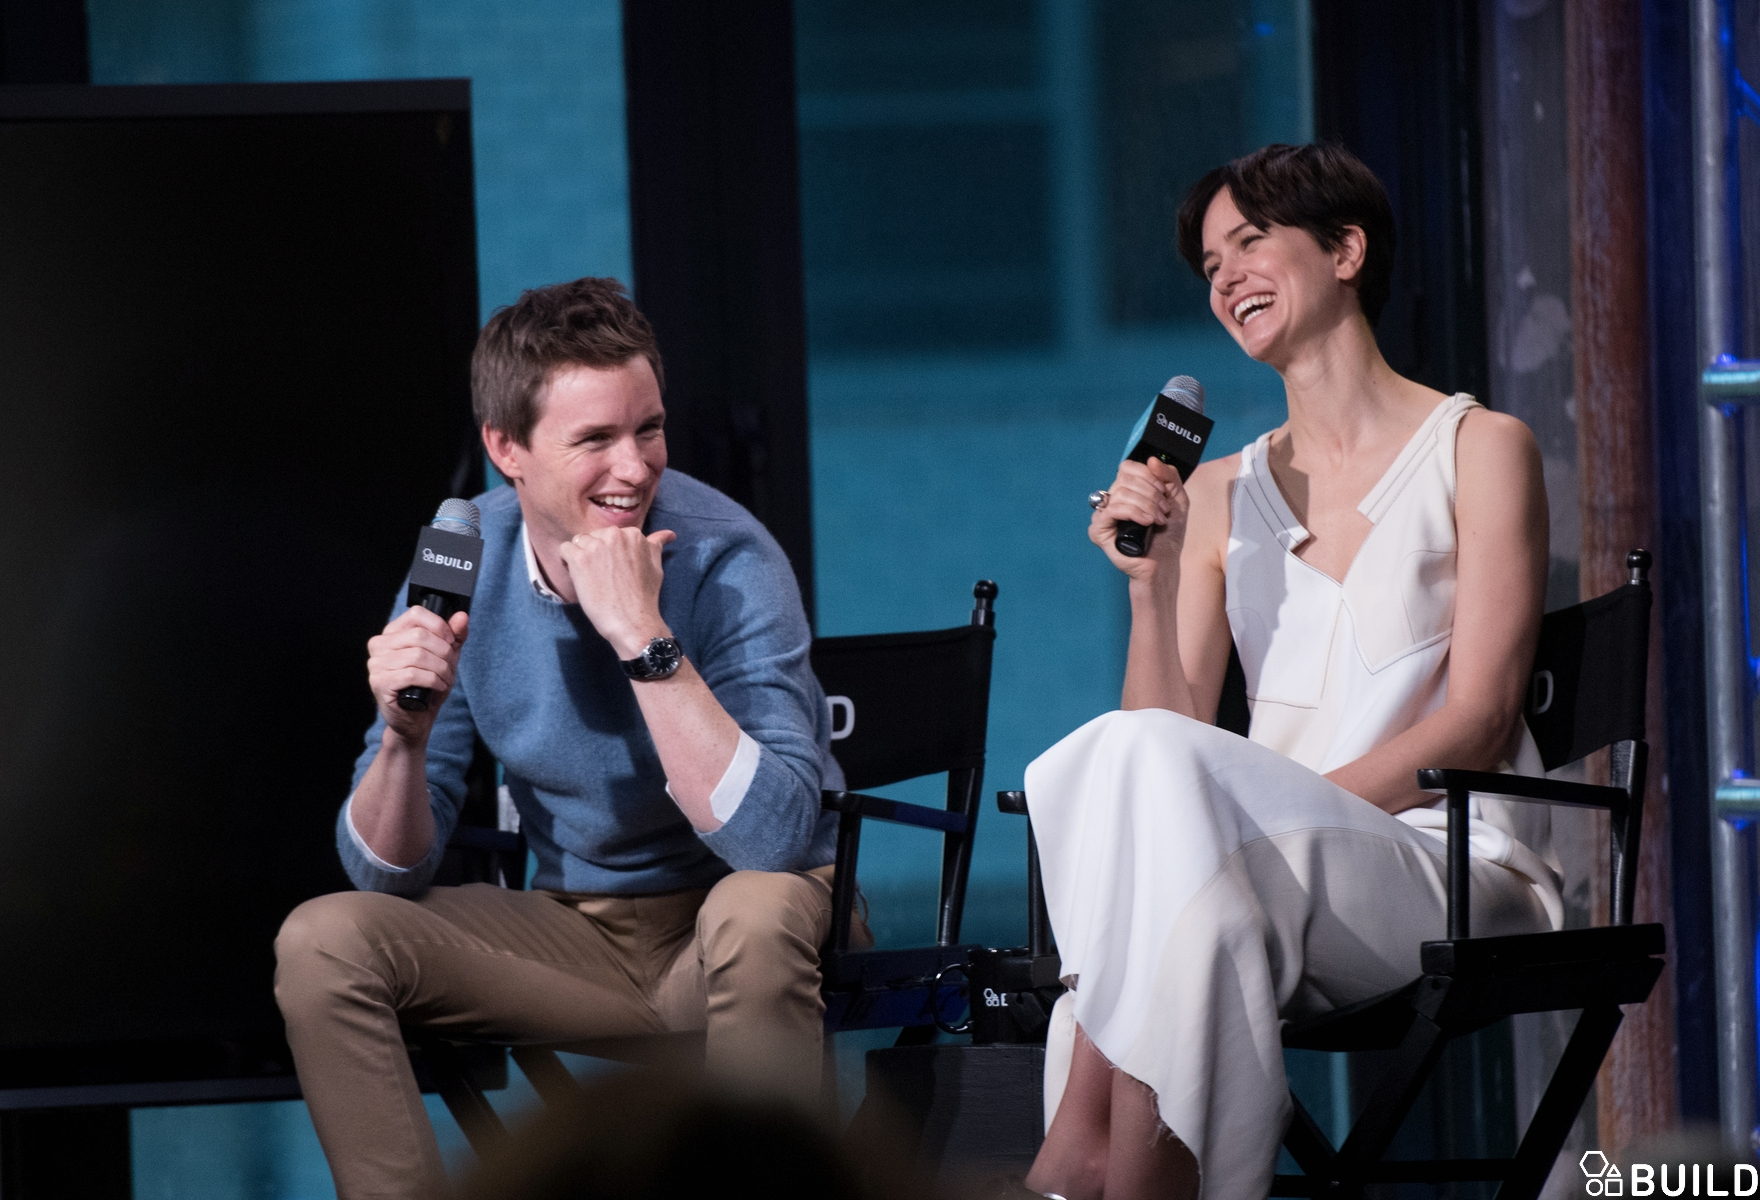 Eddie Redmayne, Katherine Waterston, Dan Fogler & Alison Sudol visits AOL Hq for Build on November 11, 2016 in New York. Photos by Noam Galai